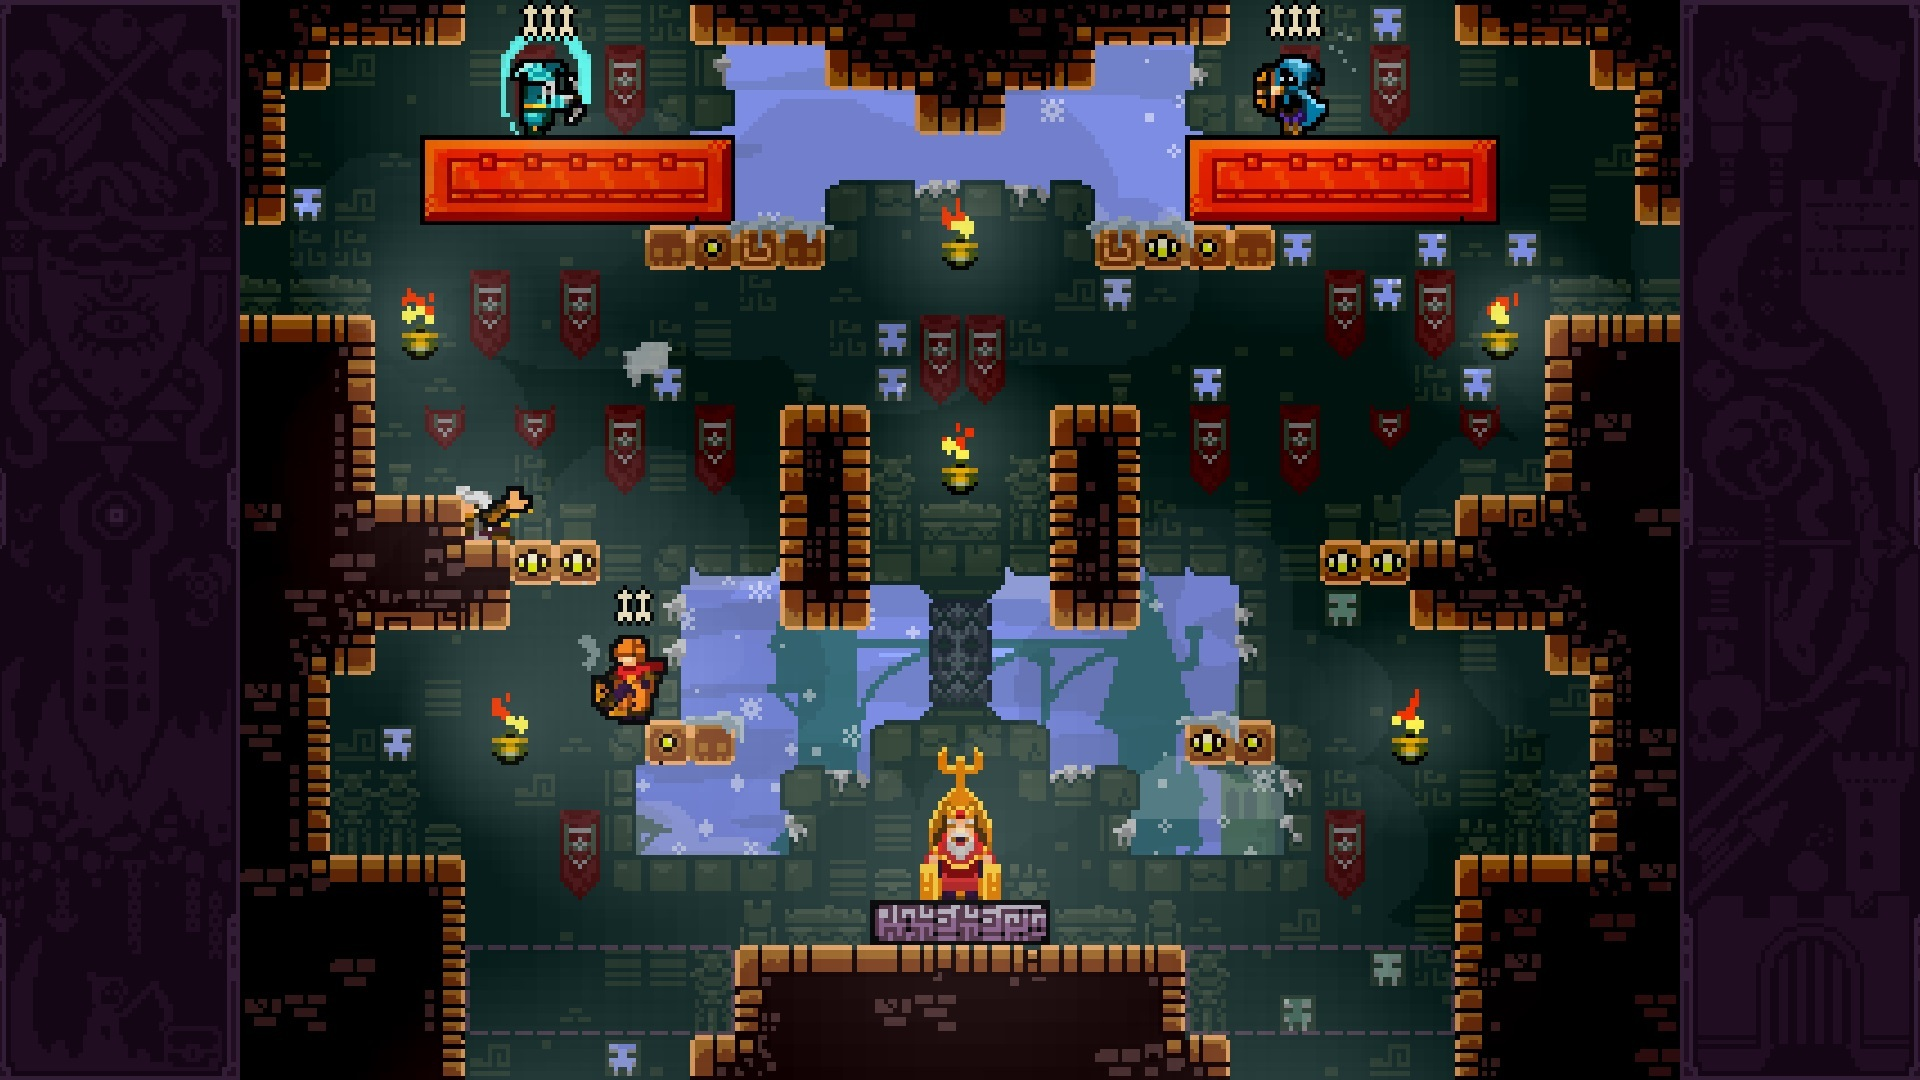 Towerfall Ascension - Best Action Games 2020